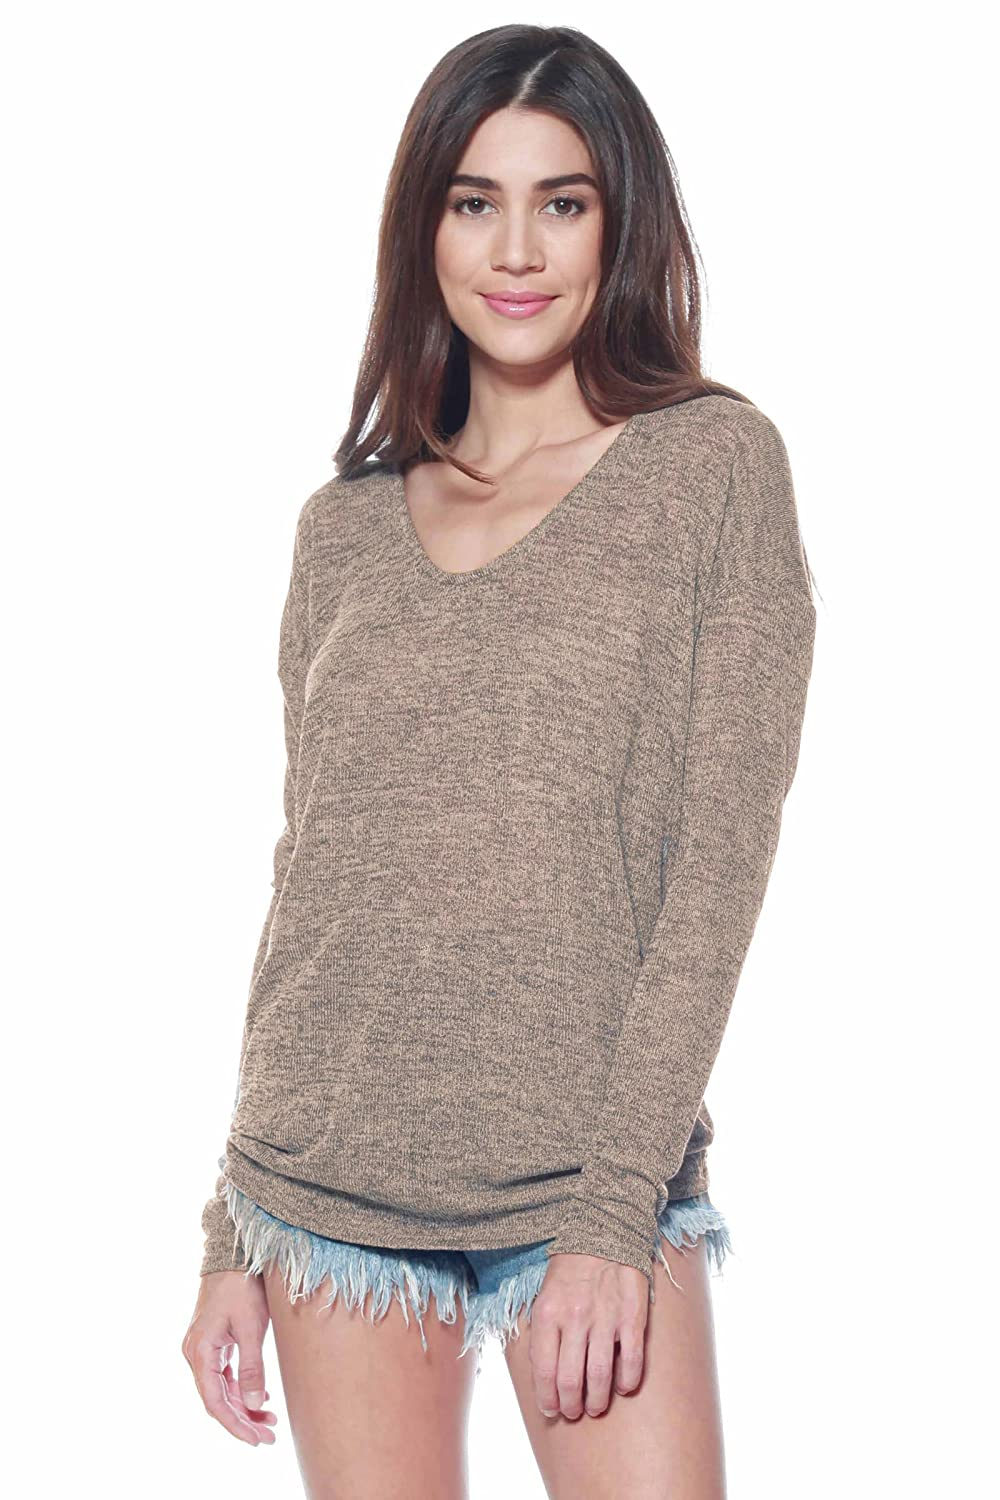 Alexander + David Womens Thin Dolman Long Sleeve Top Knit Pullover Blouse Top